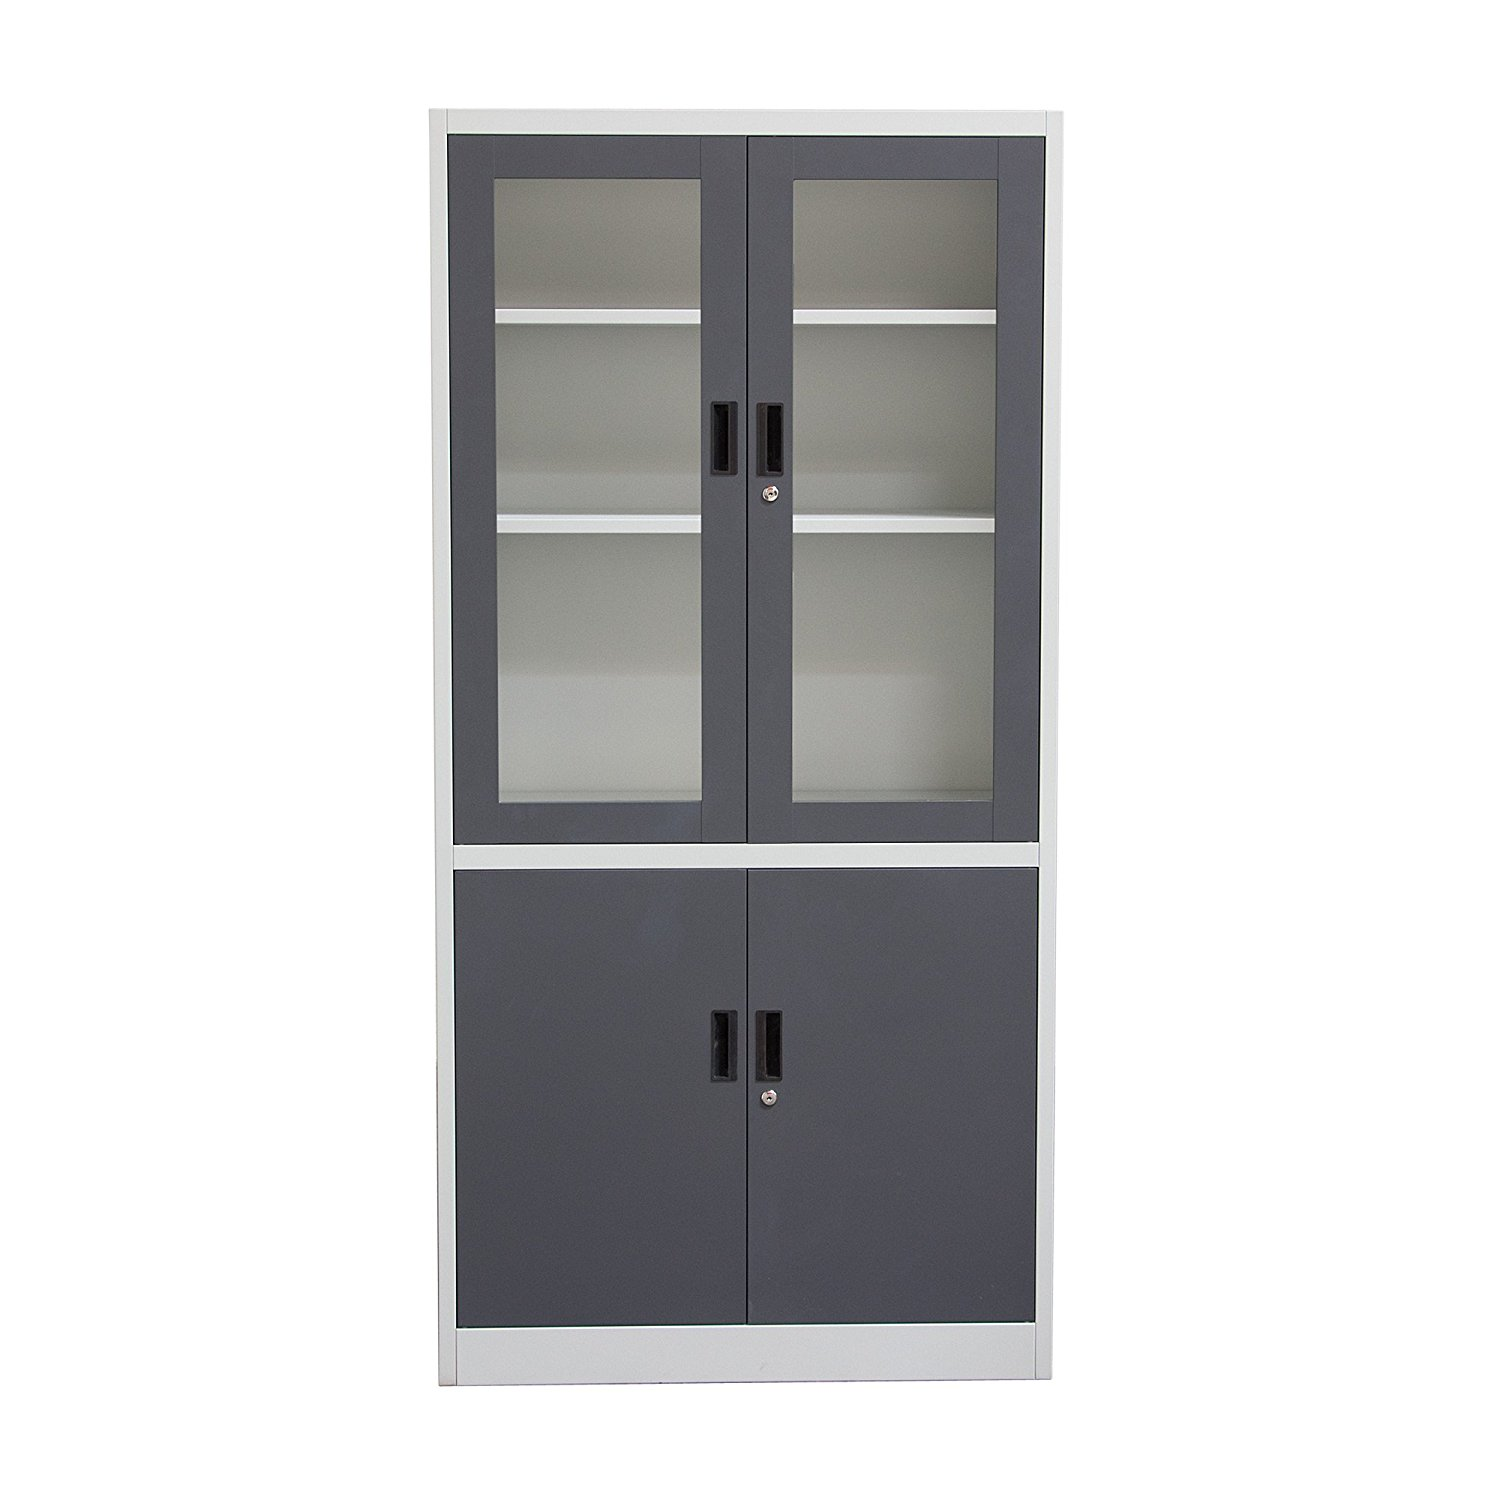 Get Quotations · 4 Door 5 Shelf Bookcase With Tempered Glass Door Front U0026  Key Lock Entry